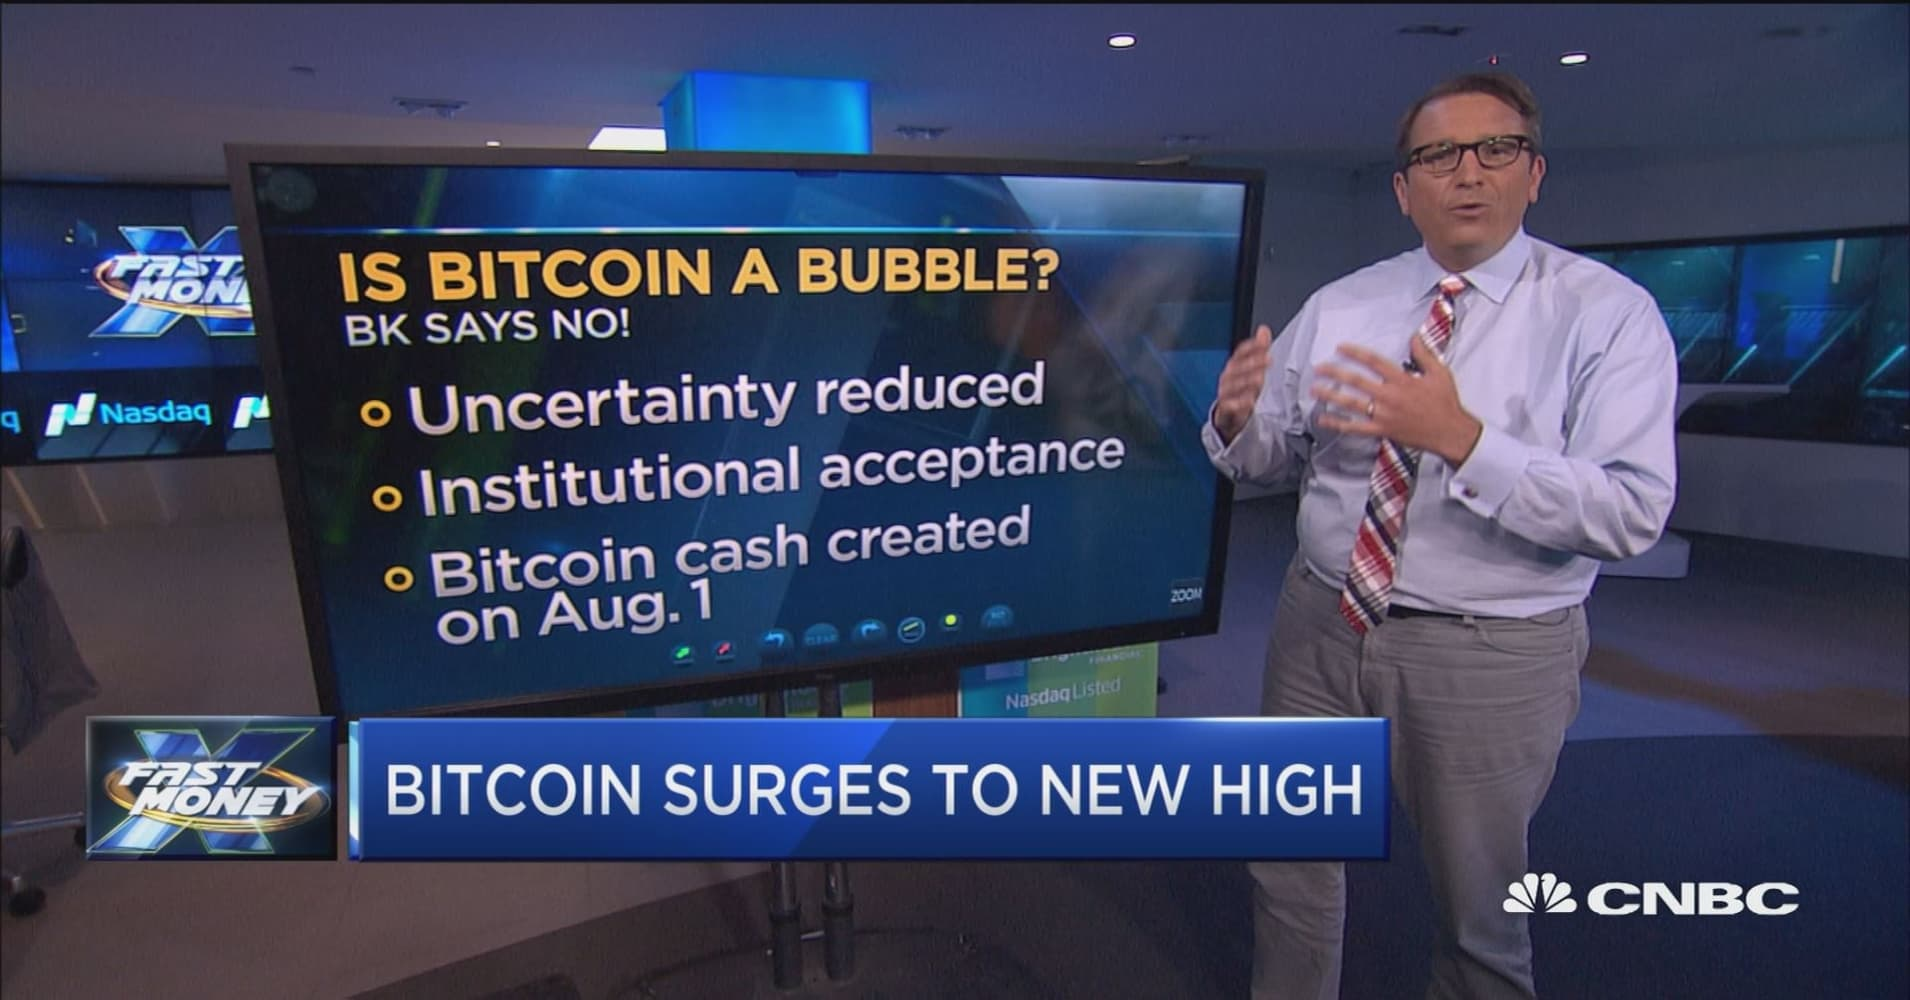 Is Bitcoin A Bubble This Trader Says No And That Now The Time To Buy